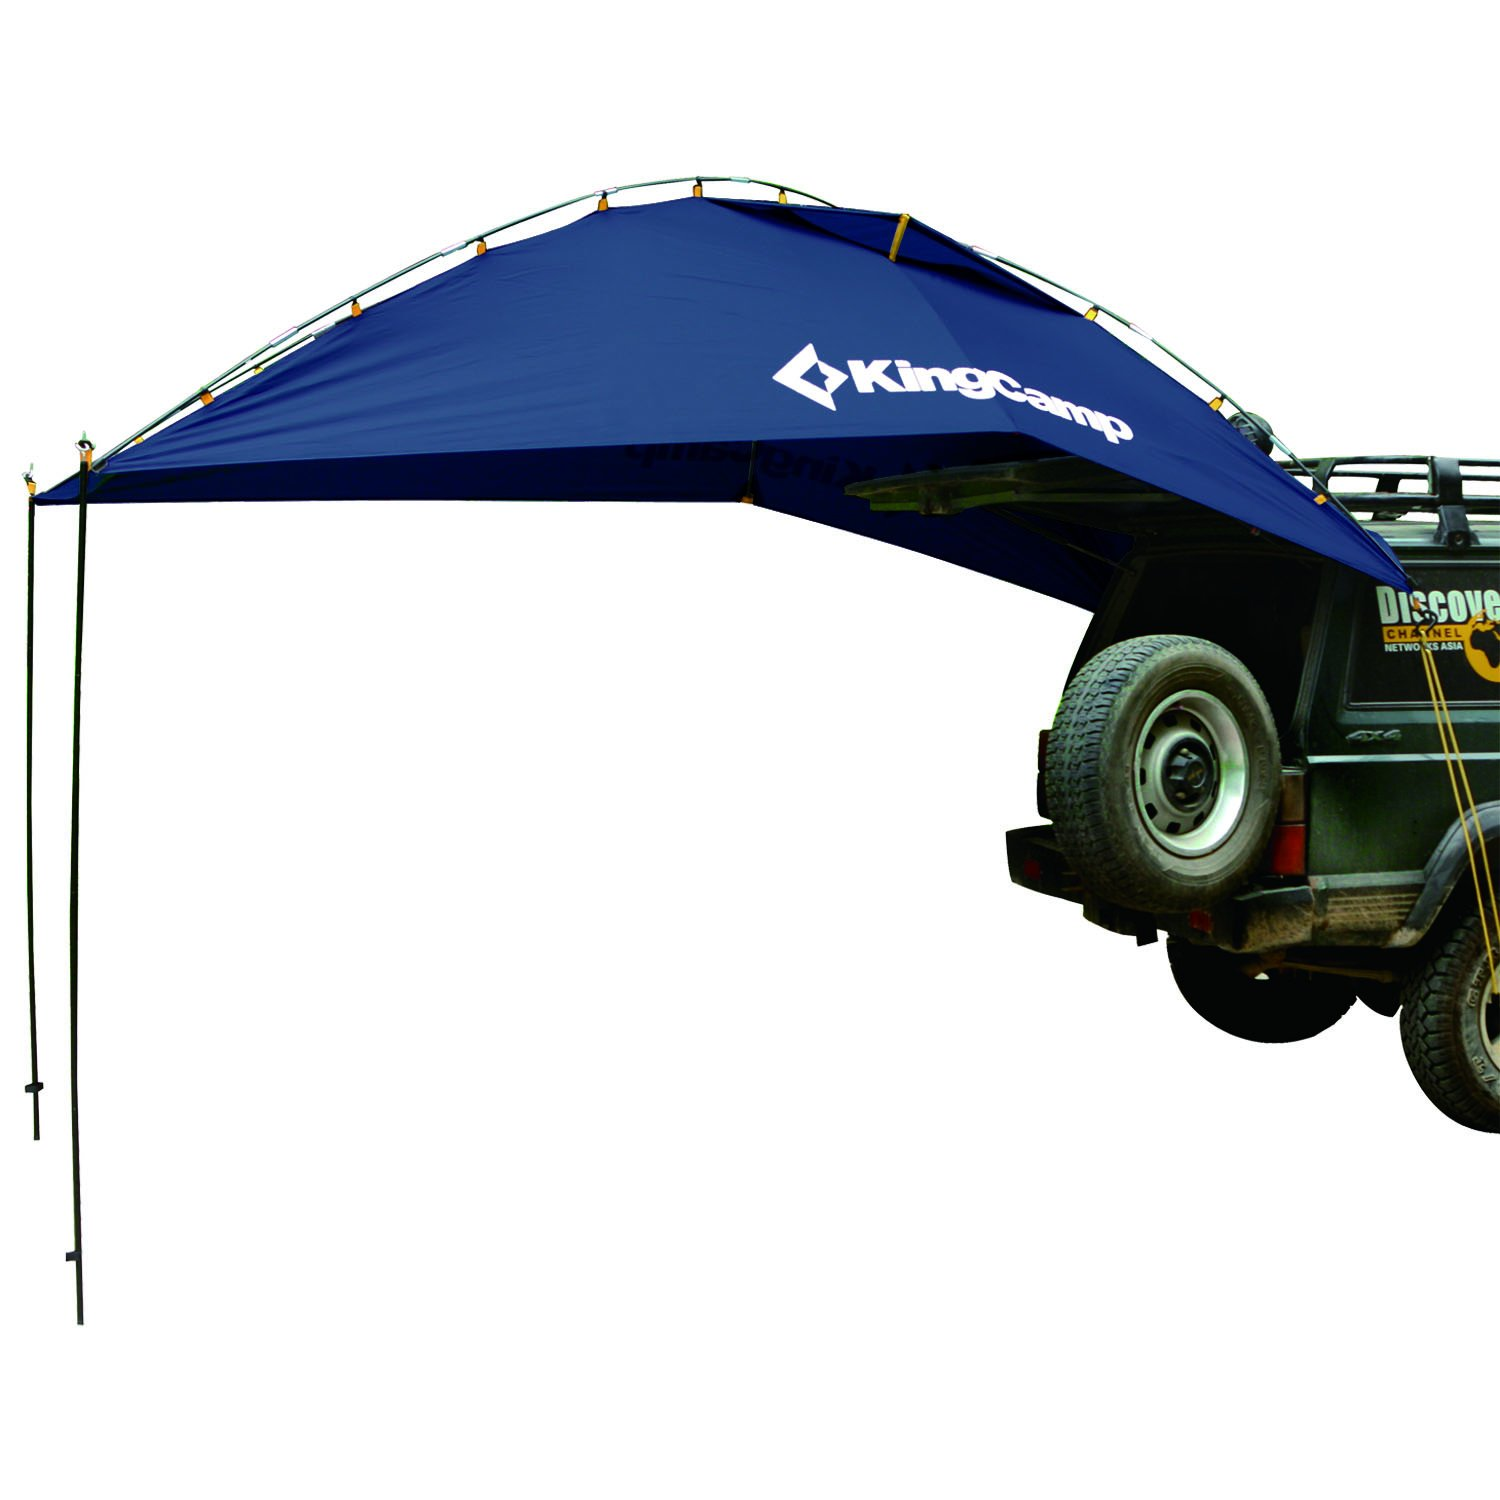 KingCamp COMPASS Awning Sun Shelter Auto Canopy Camper